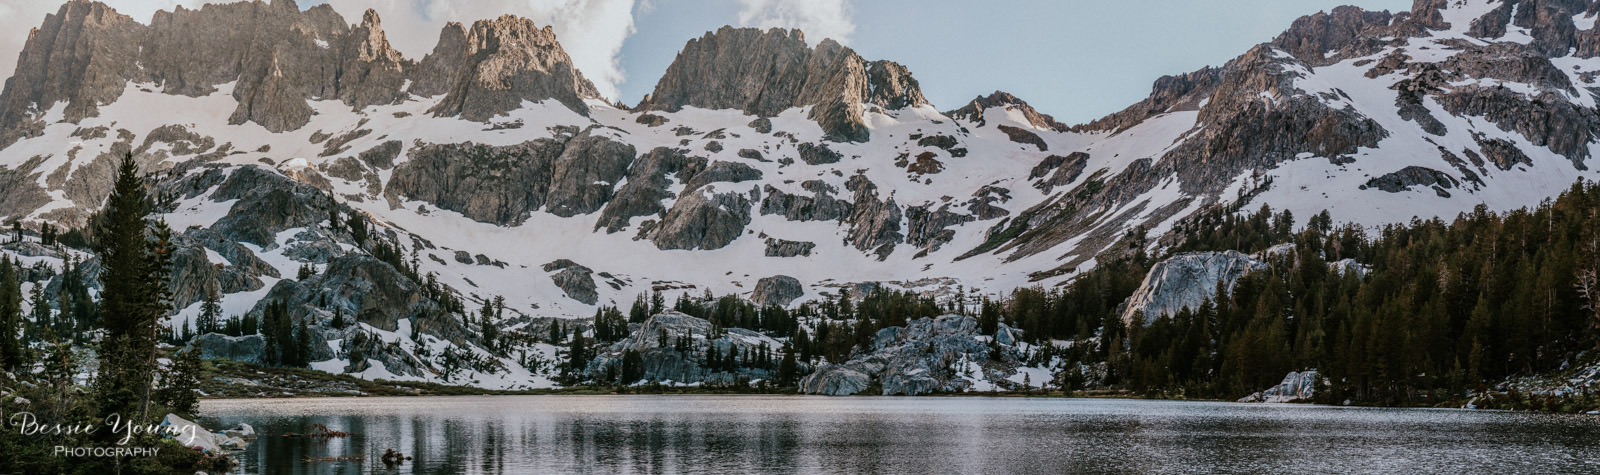 Ansel Adams Wilderness Backpacking day 1 2017 - Bessie Young Photography-26.jpg